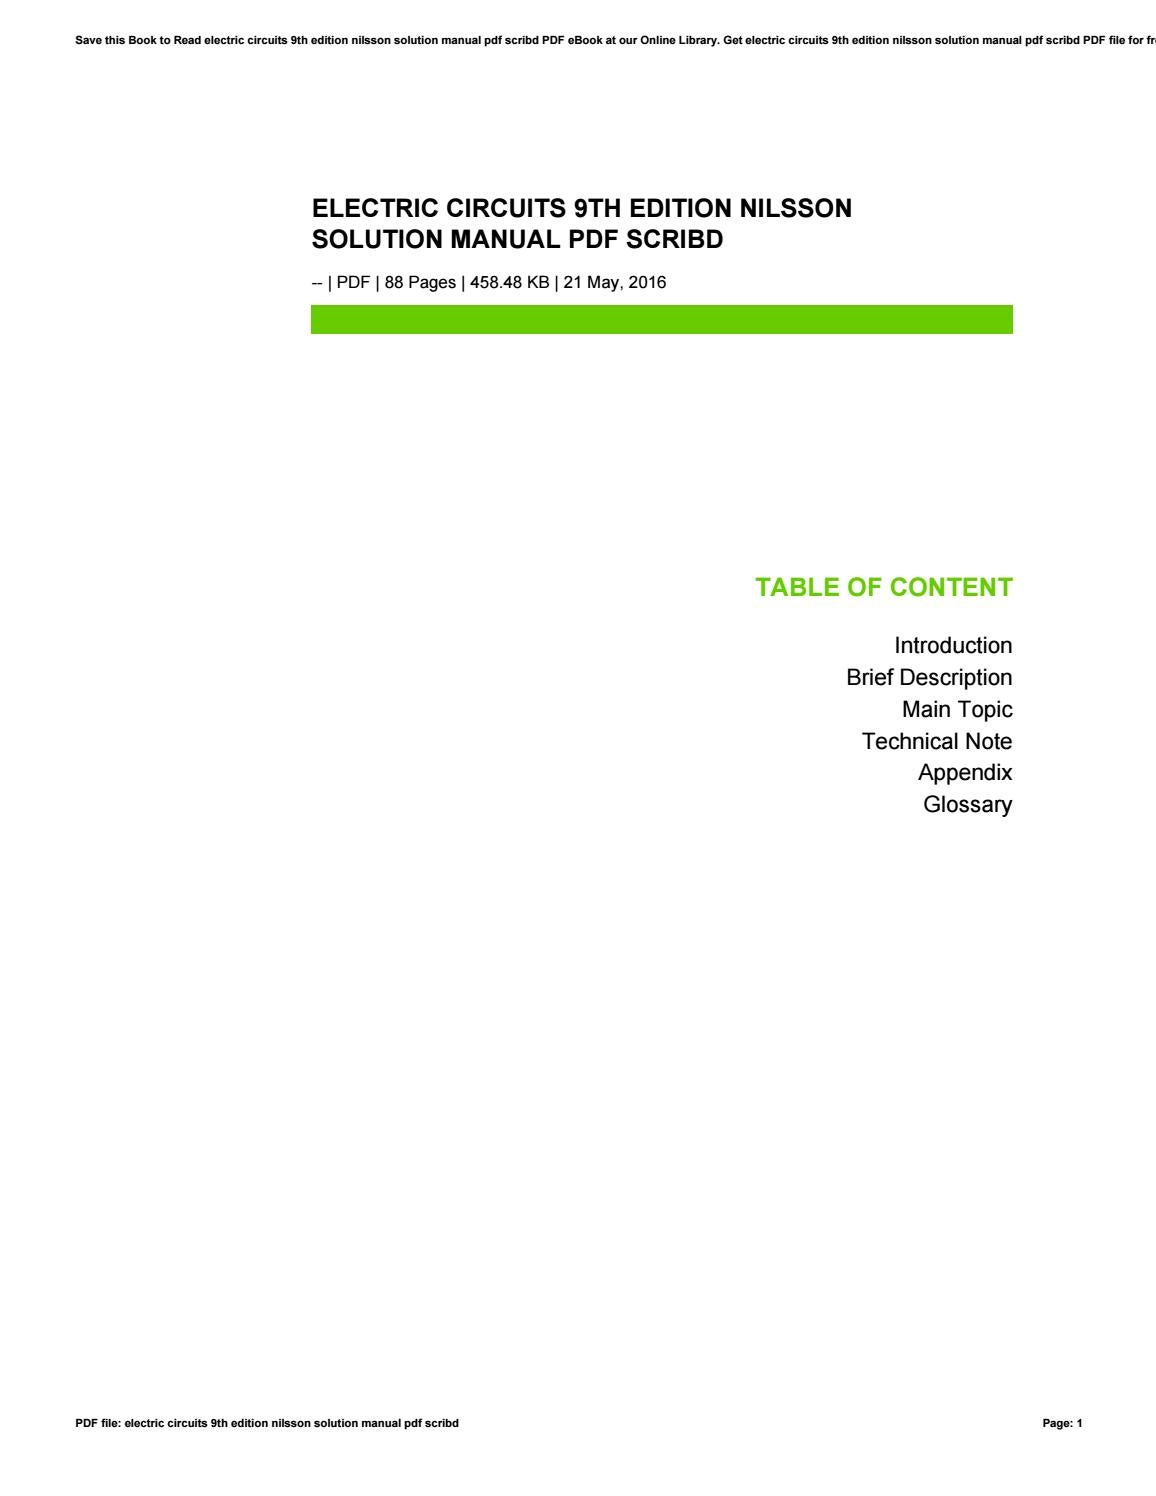 Notes On Electronic Circuits Pdf